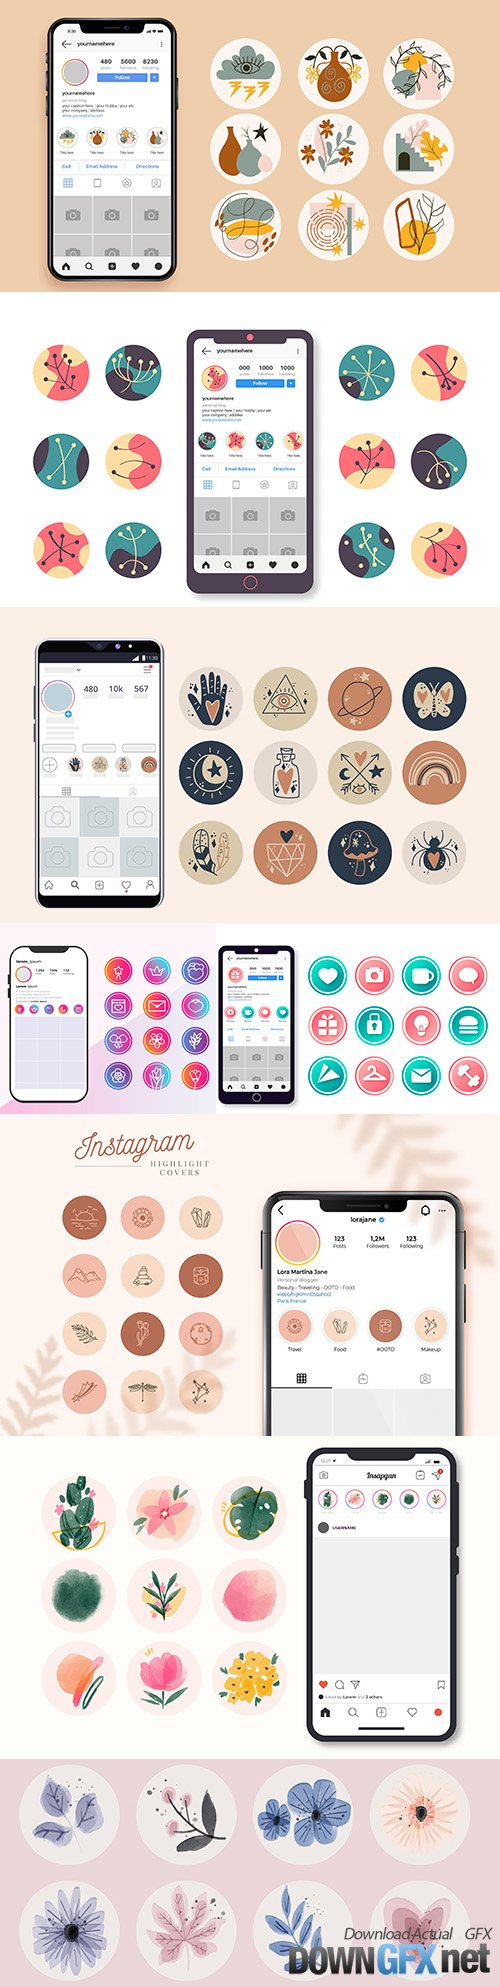 Instagram icons for application design abstract drawn